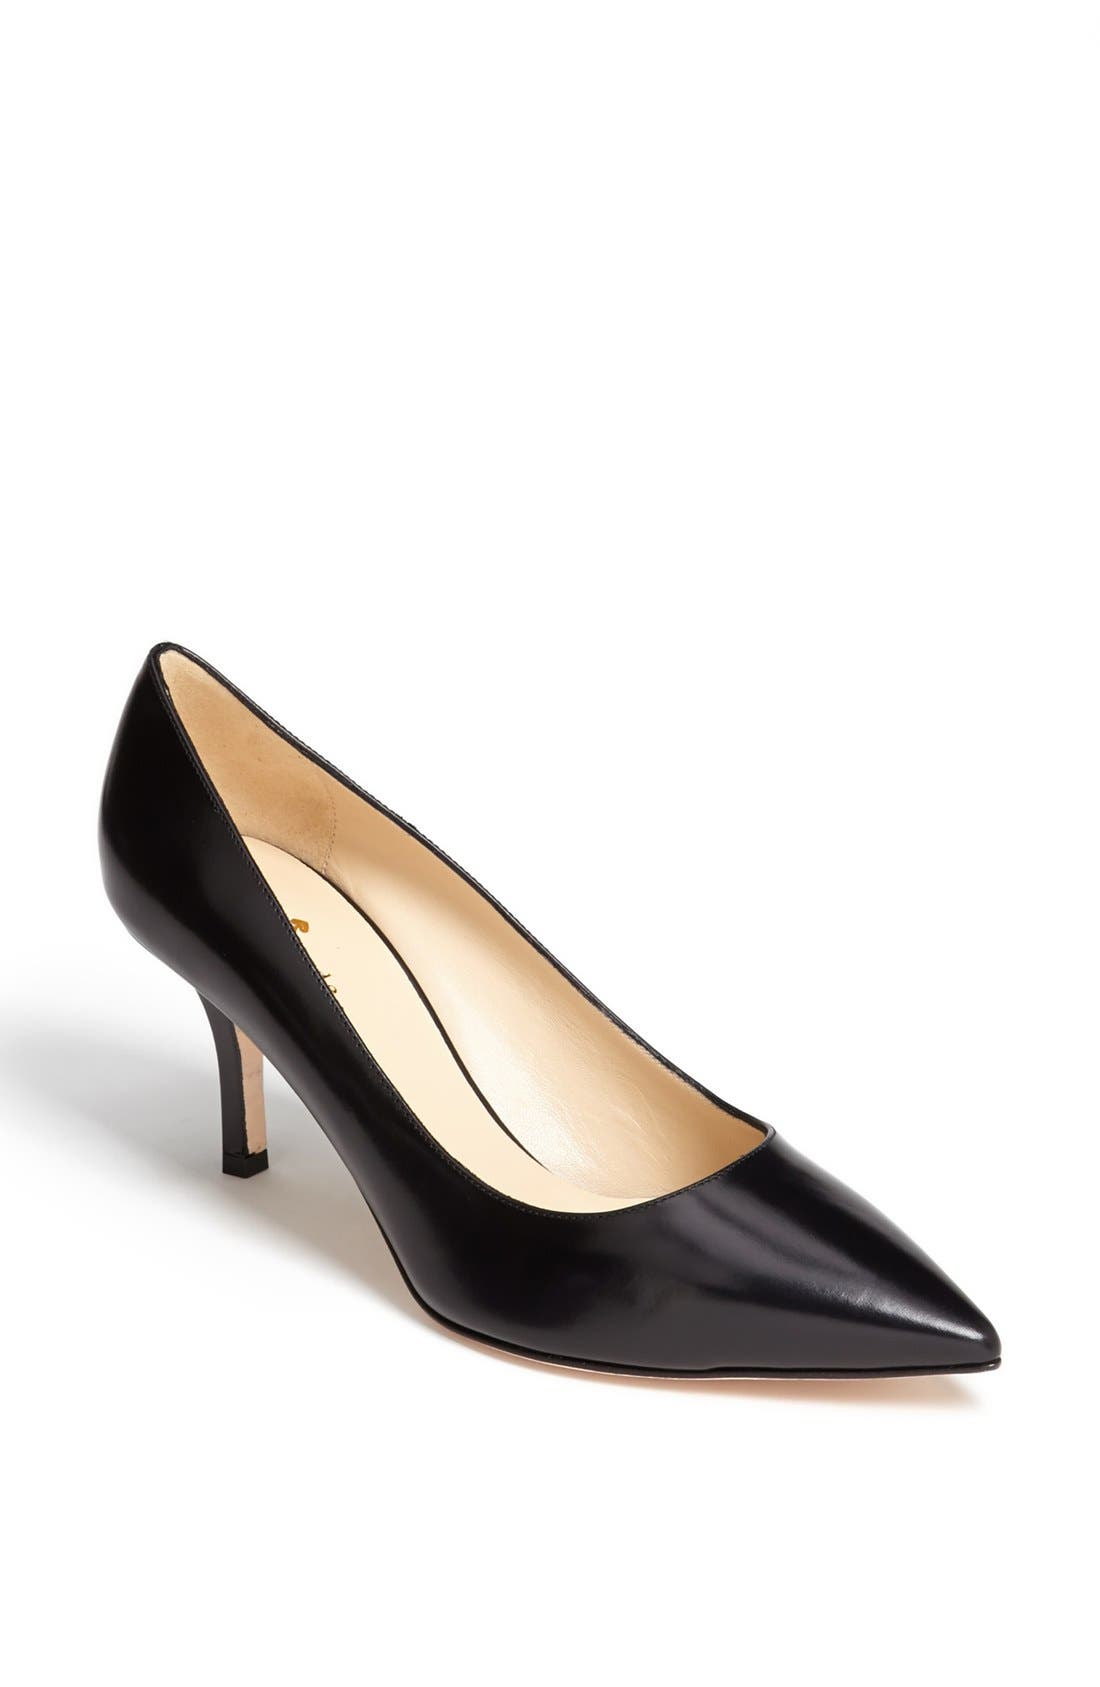 Alternate Image 1 Selected - kate spade new york 'jayden' pump